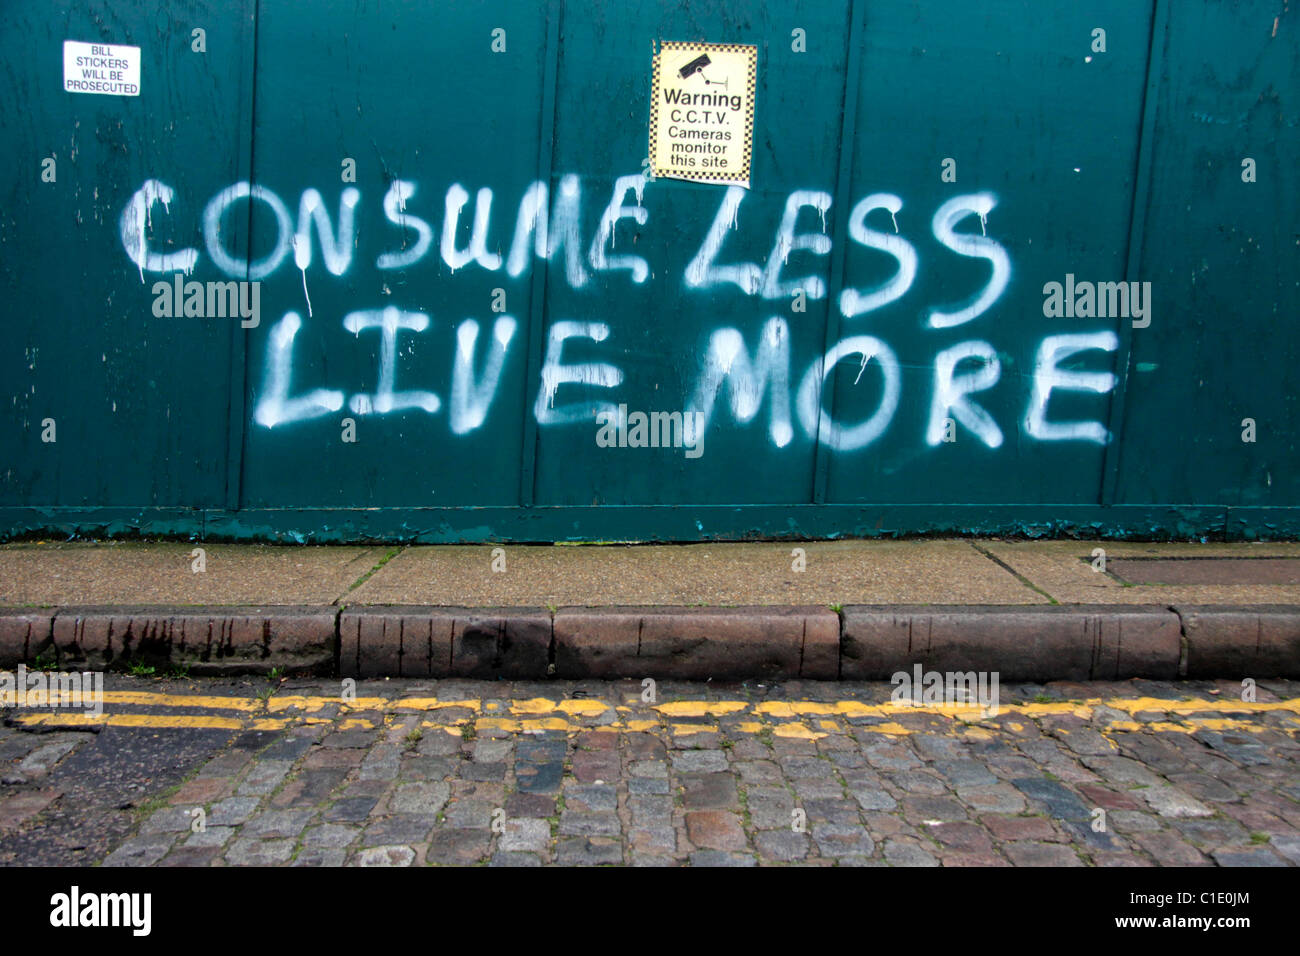 Anti-Capitalist graffiti sprayed onto a wall in Wapping, East London - Stock Image